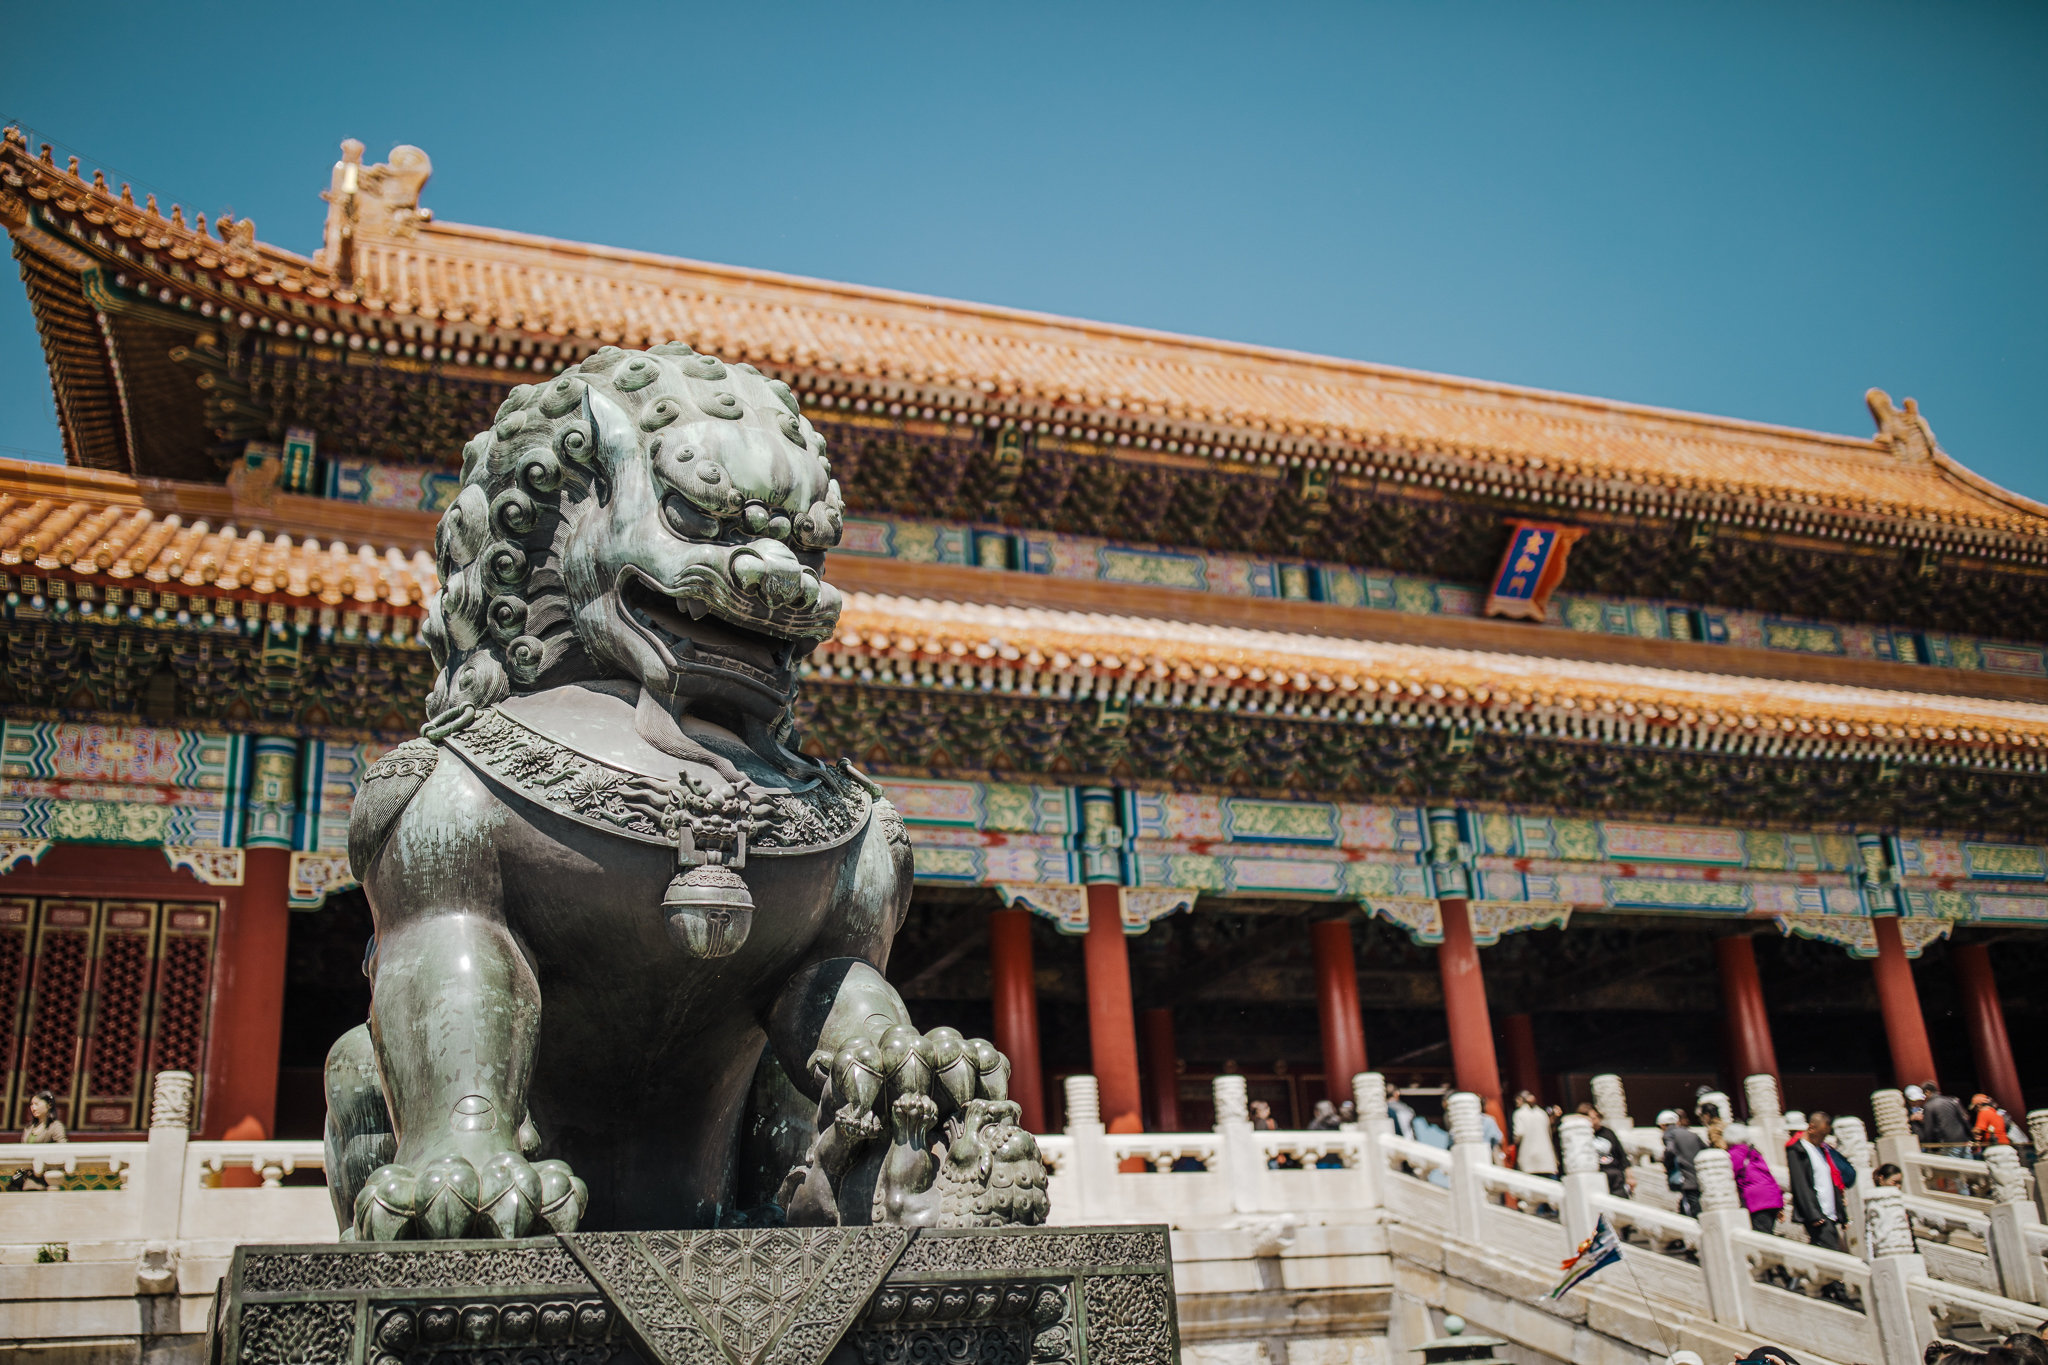 Mutianyu, Great Wall of China,  Beijing, Forbidden City, Emperors Summer Palace (9 of 51).jpg